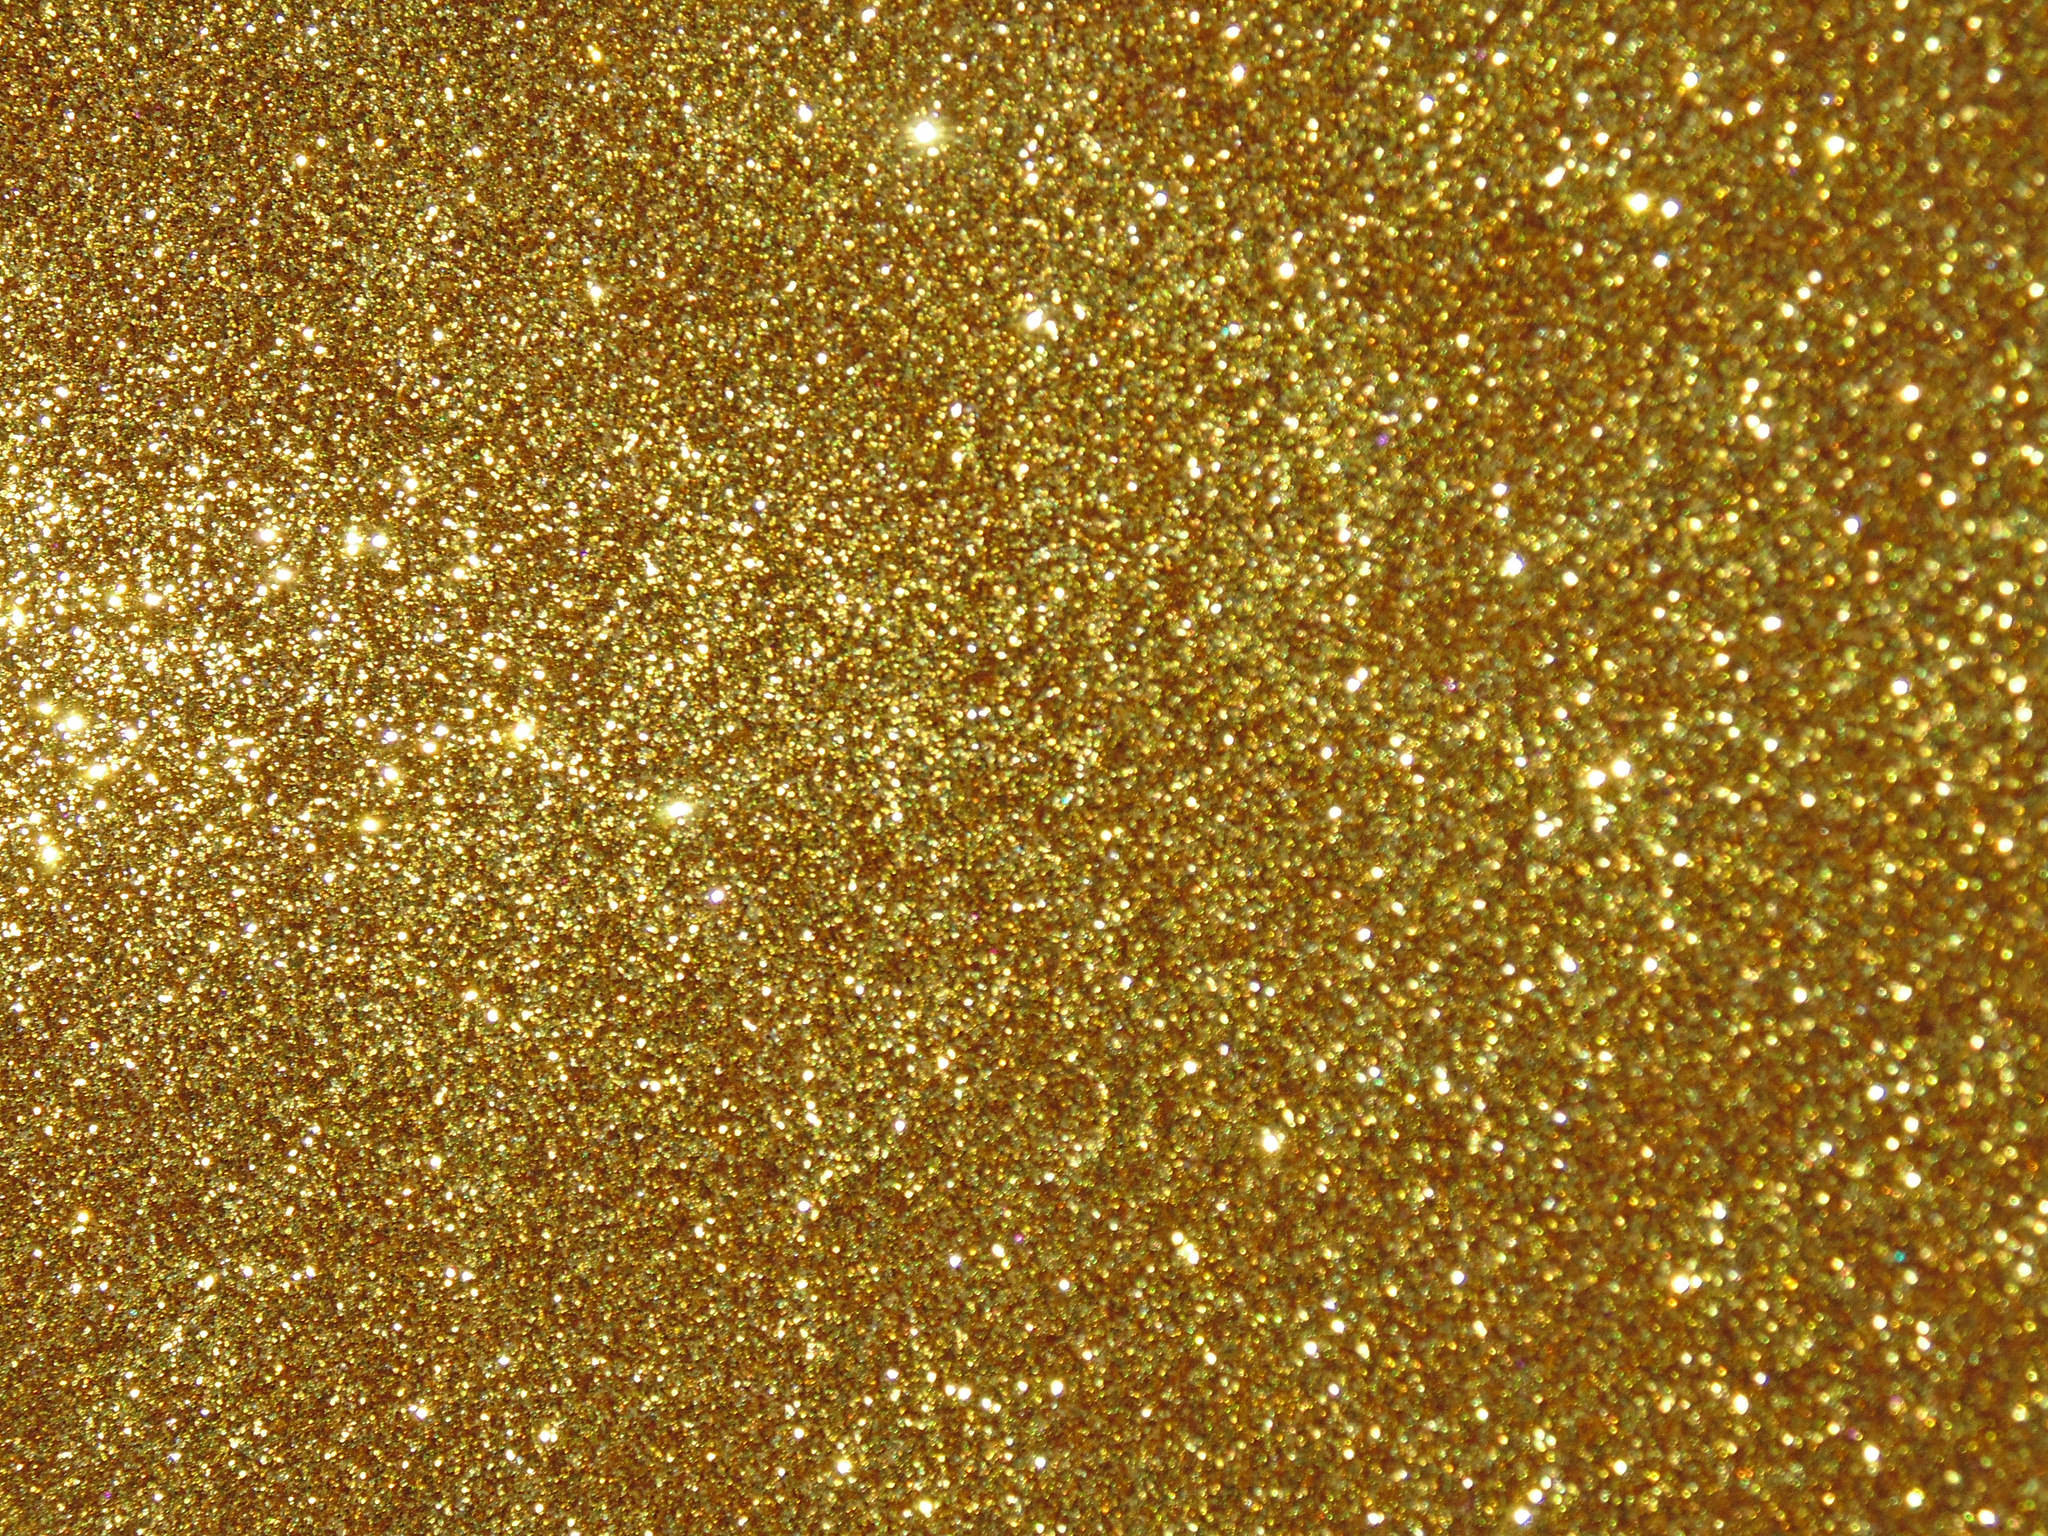 Gold Glitter Wallpaper HD   HD Wallpapers, Backgrounds, Images .